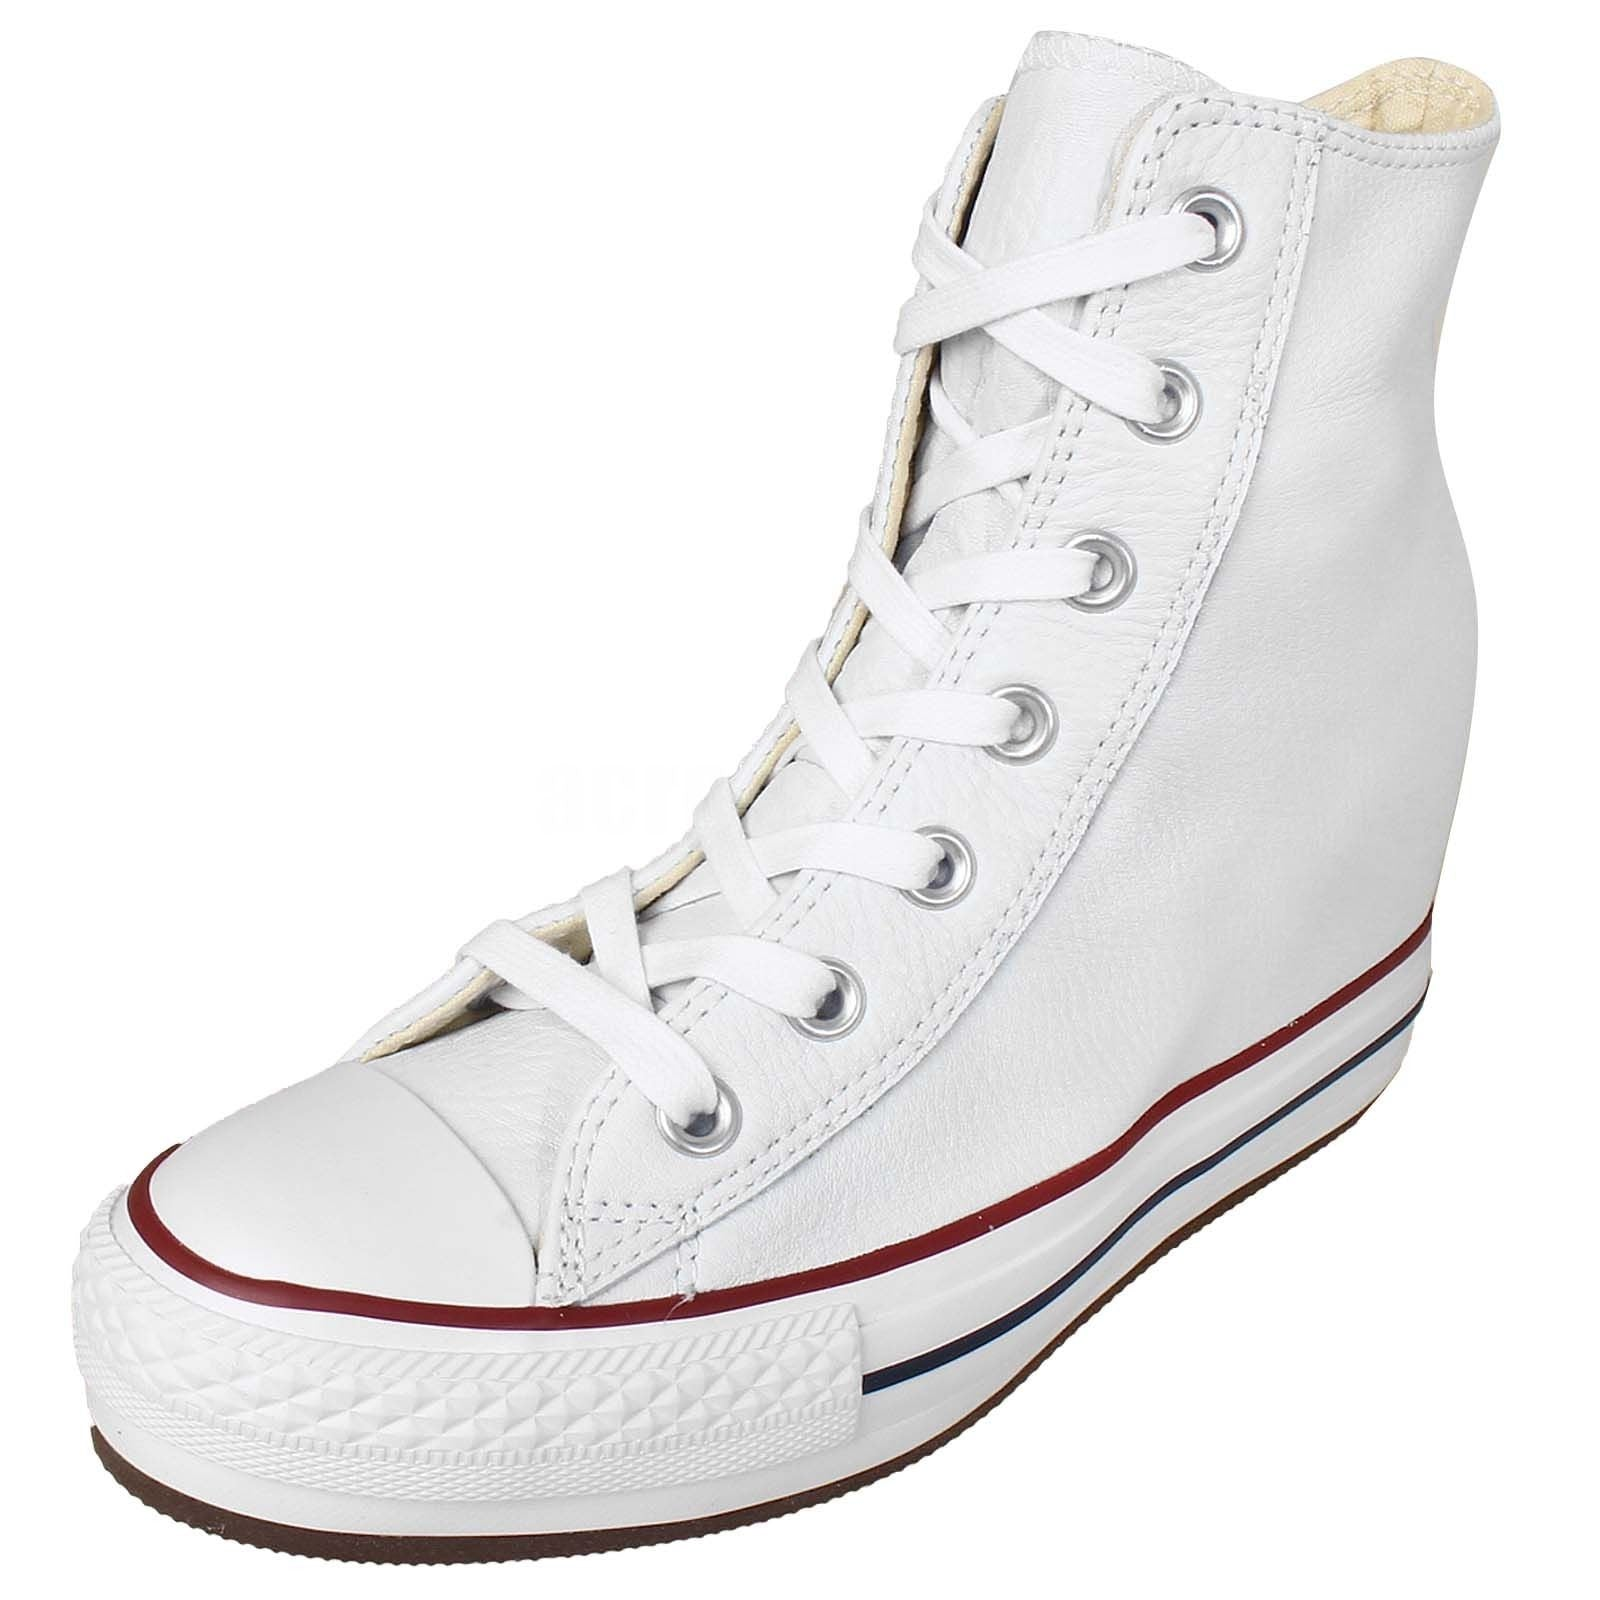 bfe7cfbe5269 ... Converse Chuck Taylor All Star Plat Plus Hi White Leather Wedge 544927C Soft  Leather Famous Rock